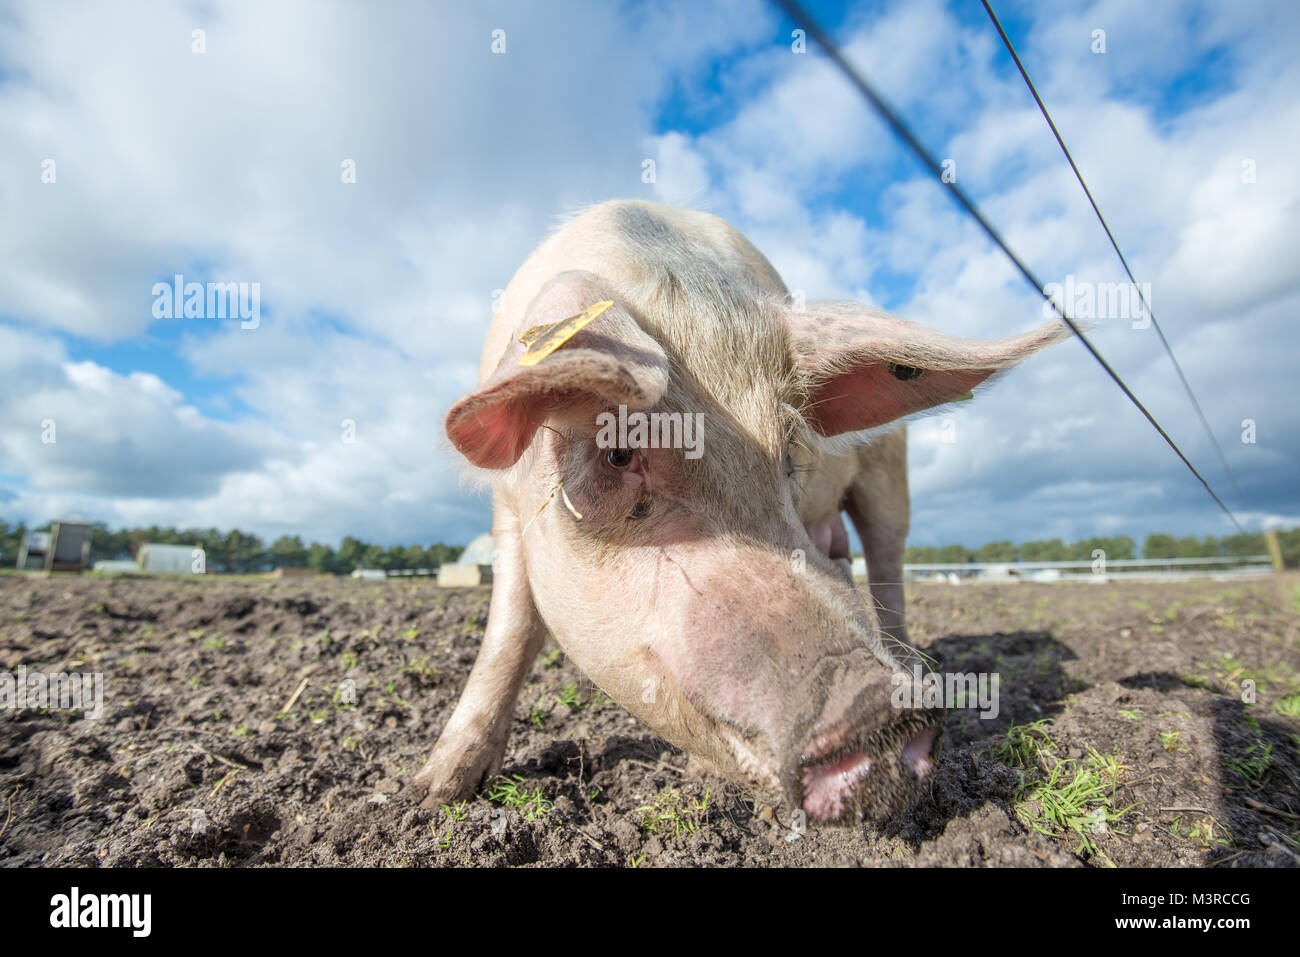 Happy pig on an organic farm in the UK Stock Photo